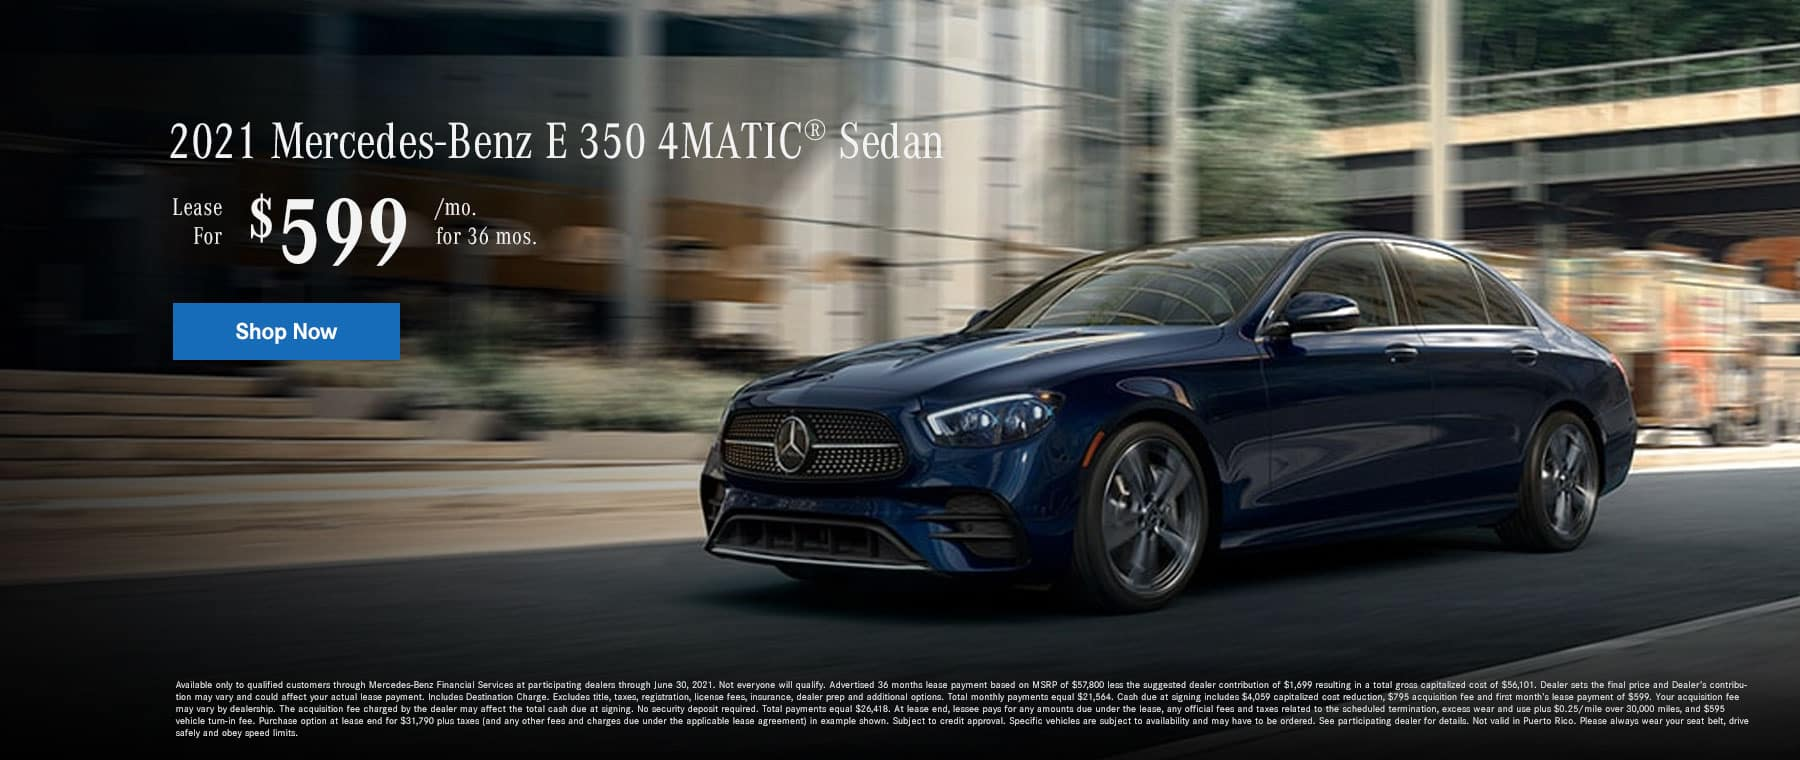 2021 Mercedes-Benz E 350 4MATIC® Sedan. Lease for $599 Per Month for 36 Months